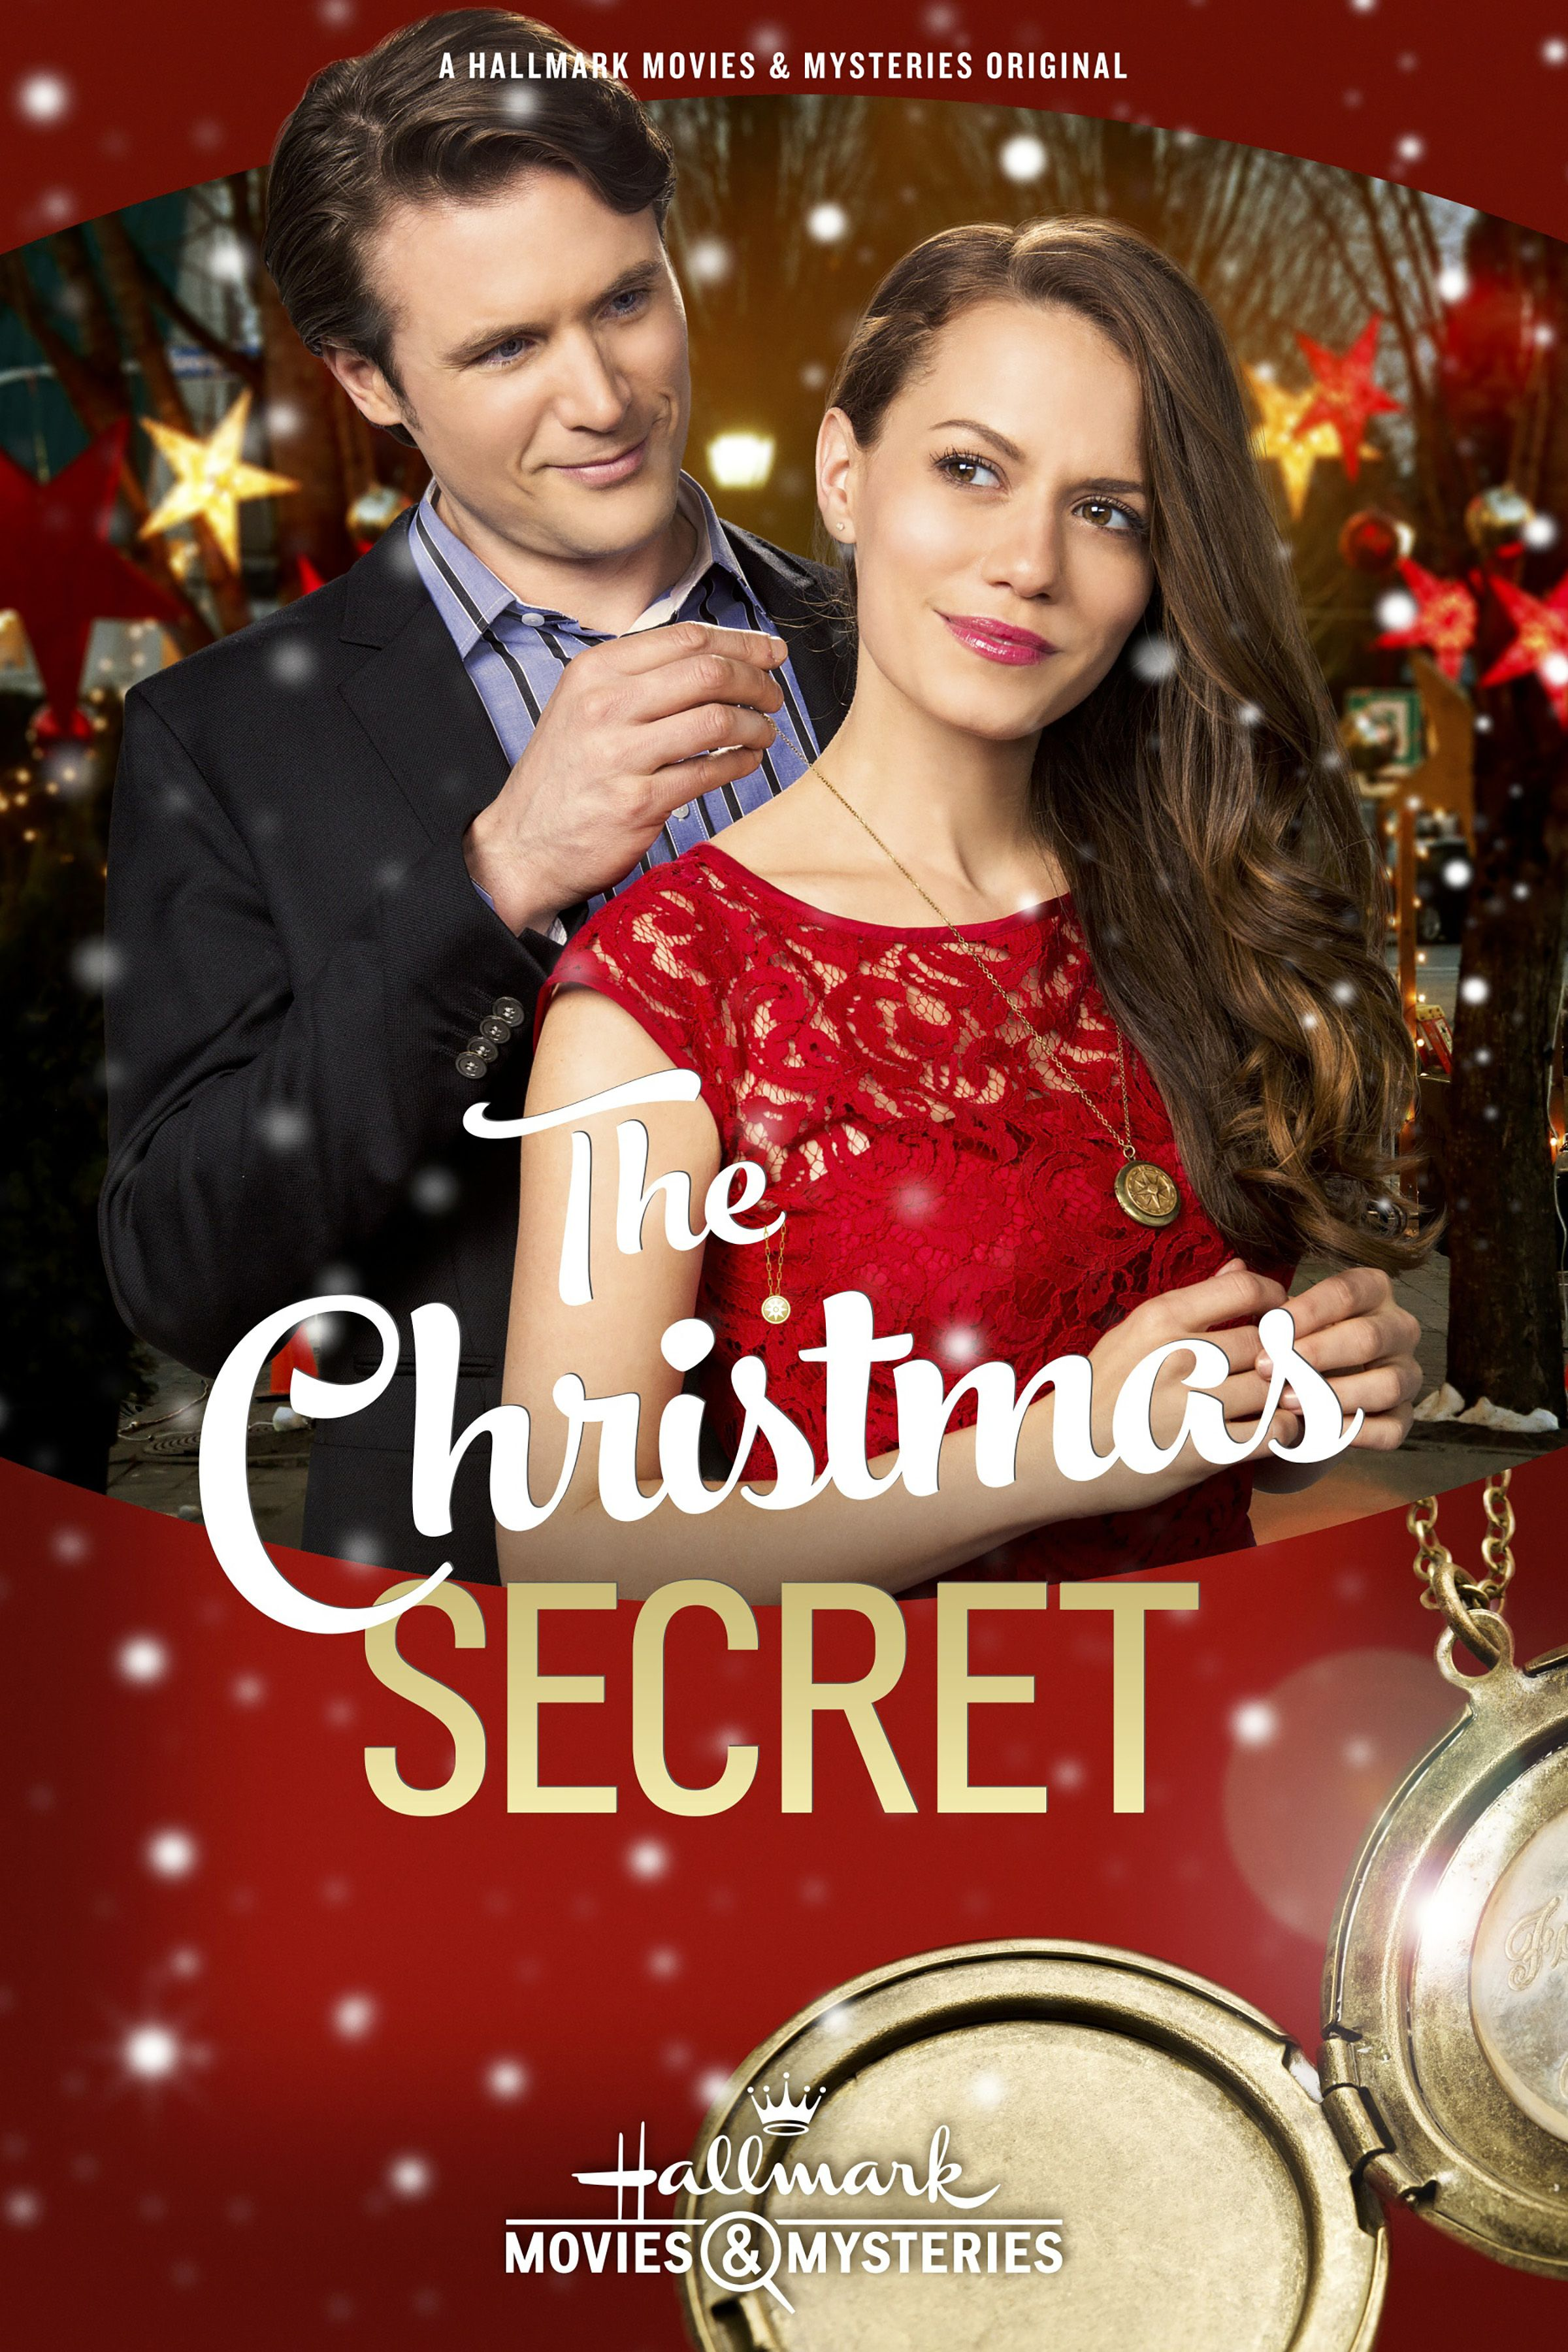 The Christmas Secret Christian Movie/Film Hallmark